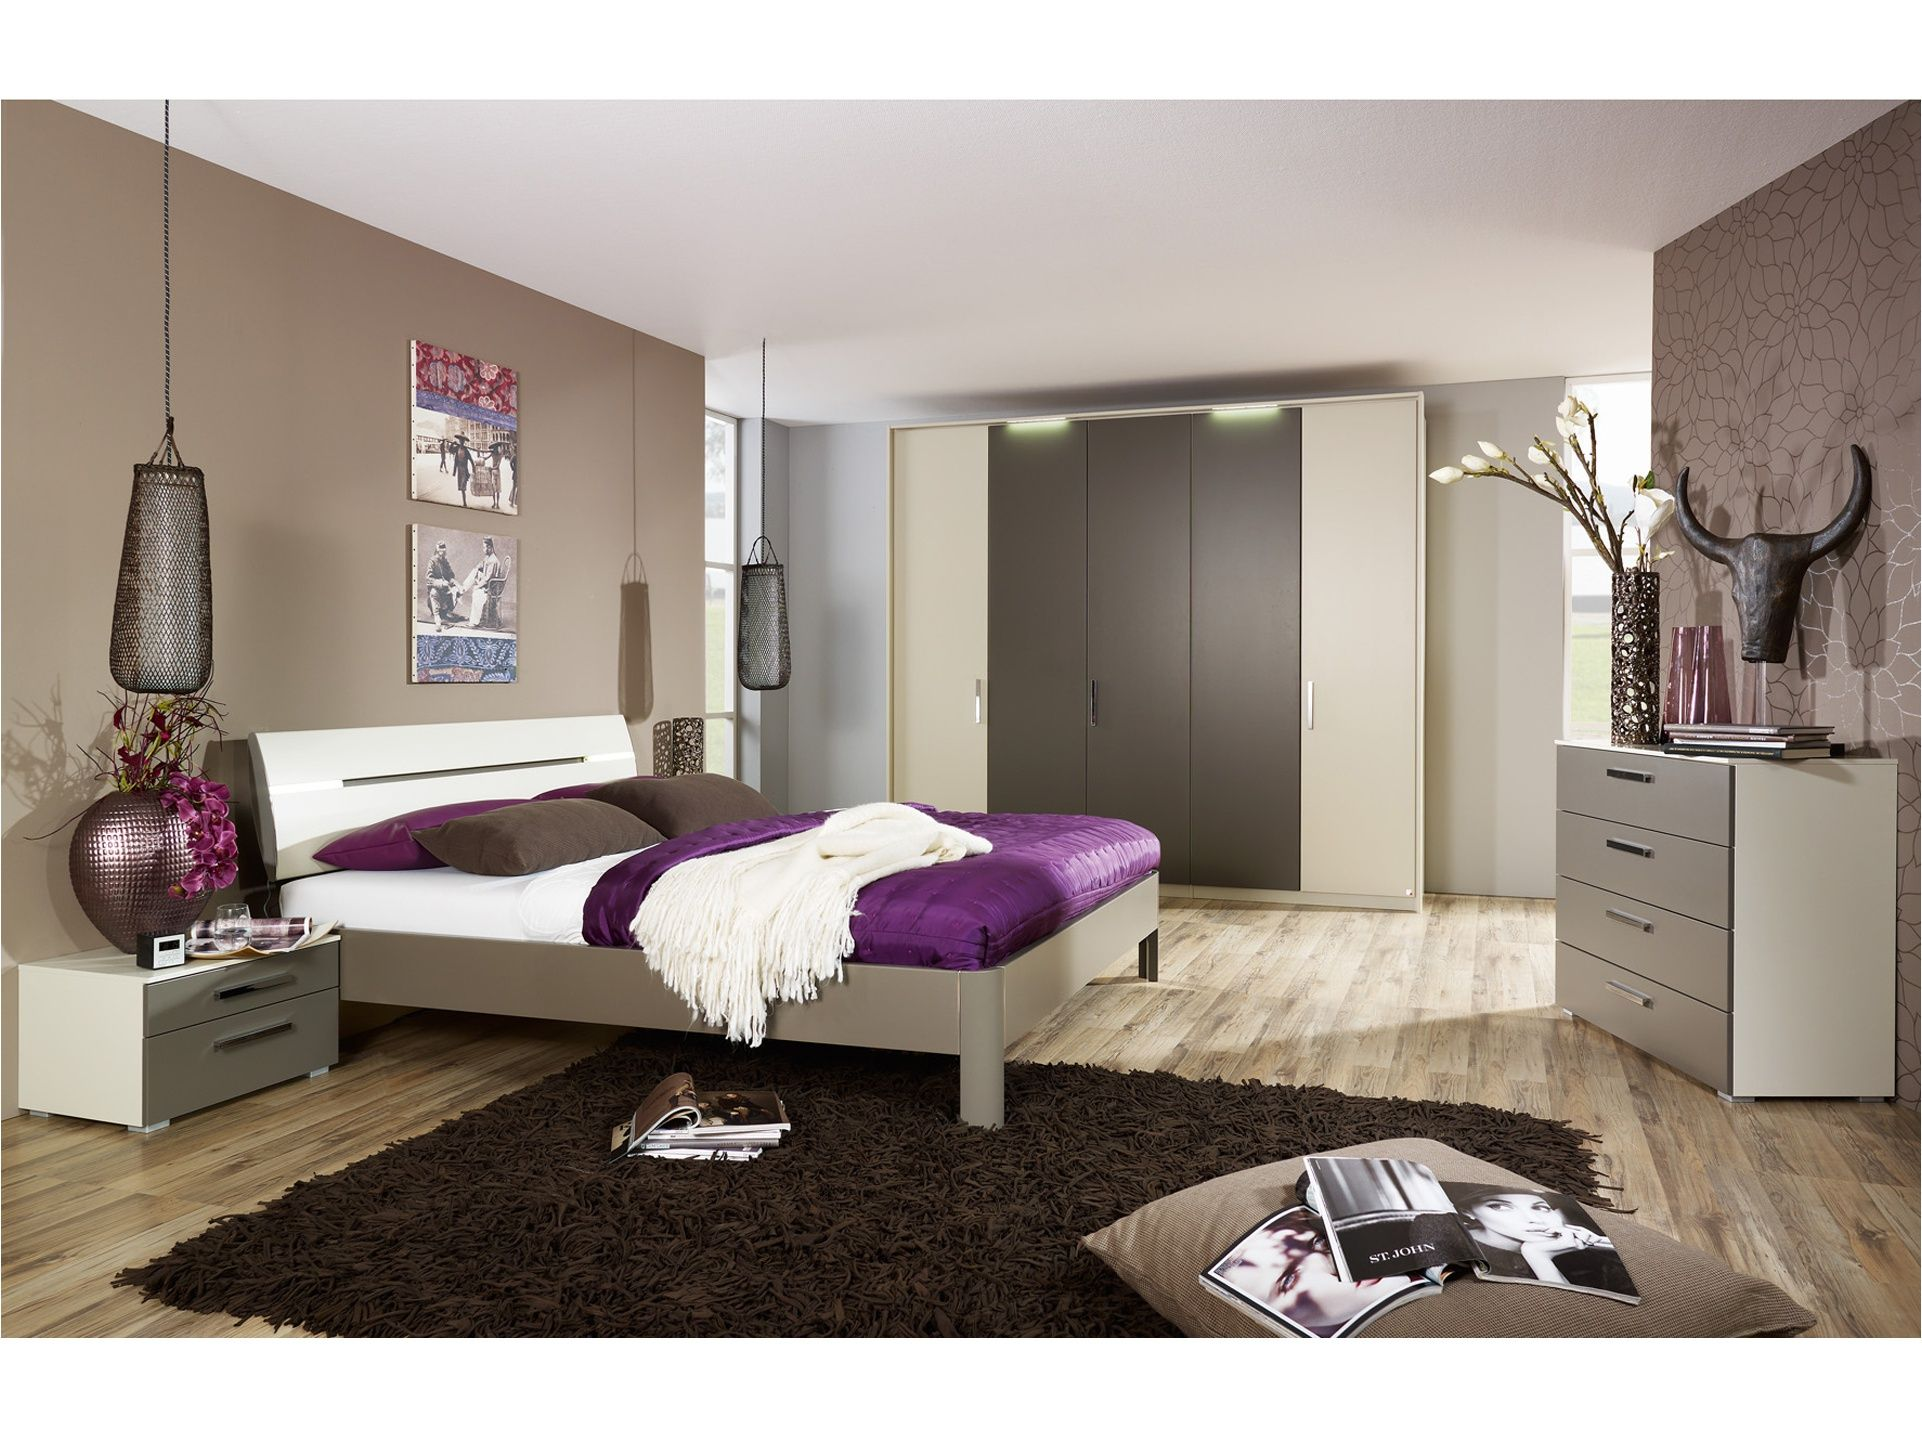 Chambre coucher adulte moderne deco pinterest for Exemple de decoration de chambre adulte